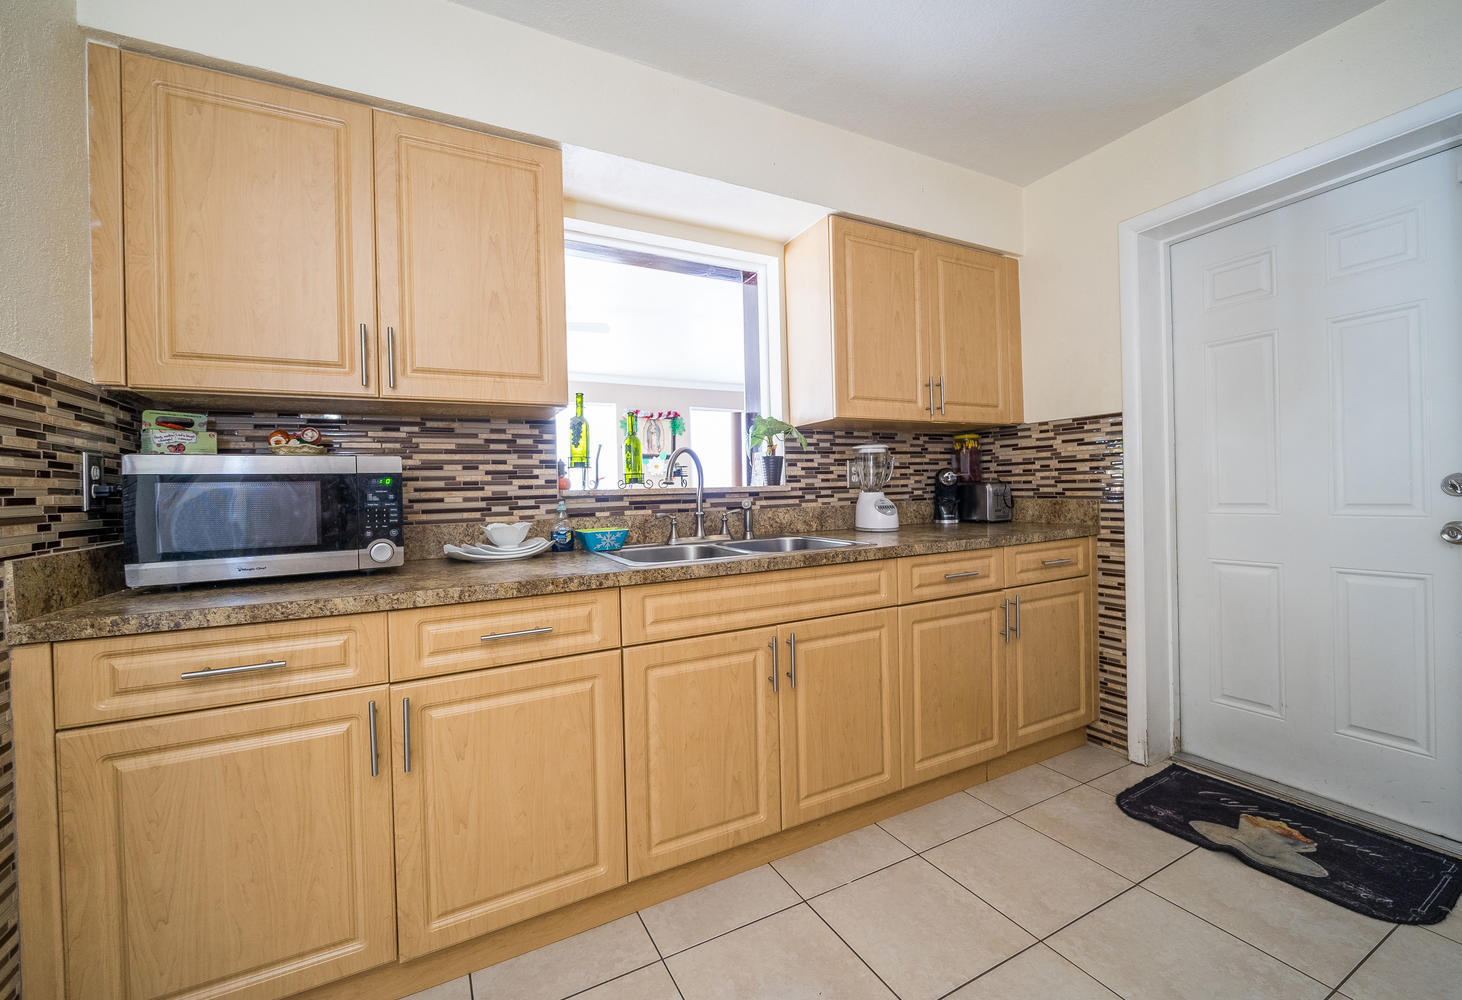 913 Montego Drive West Palm Beach, FL 33415 small photo 7